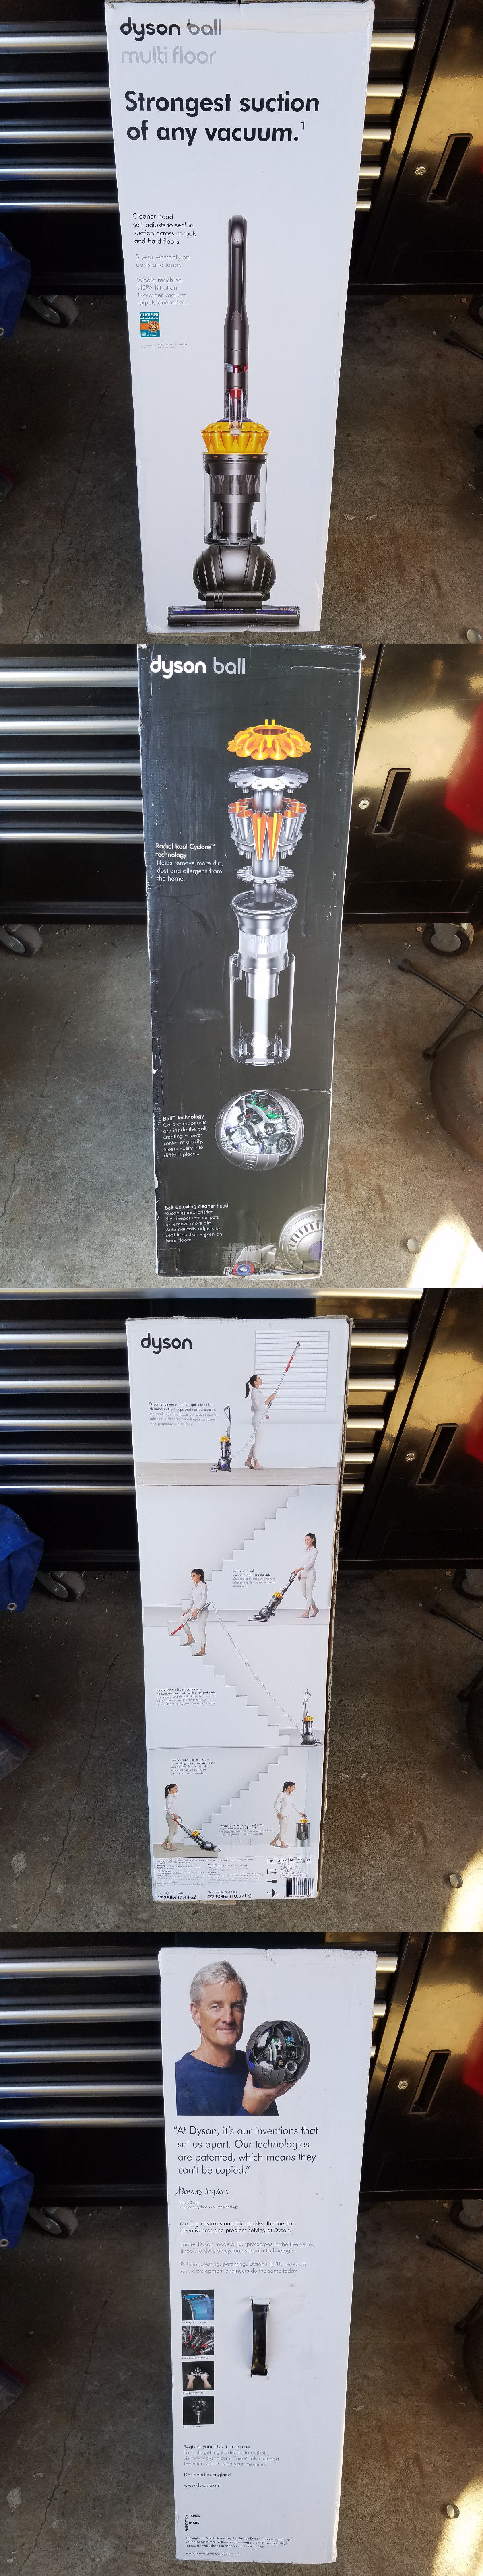 multi dyson cleaner reviews vacuum cylinder musclehead ball review floor